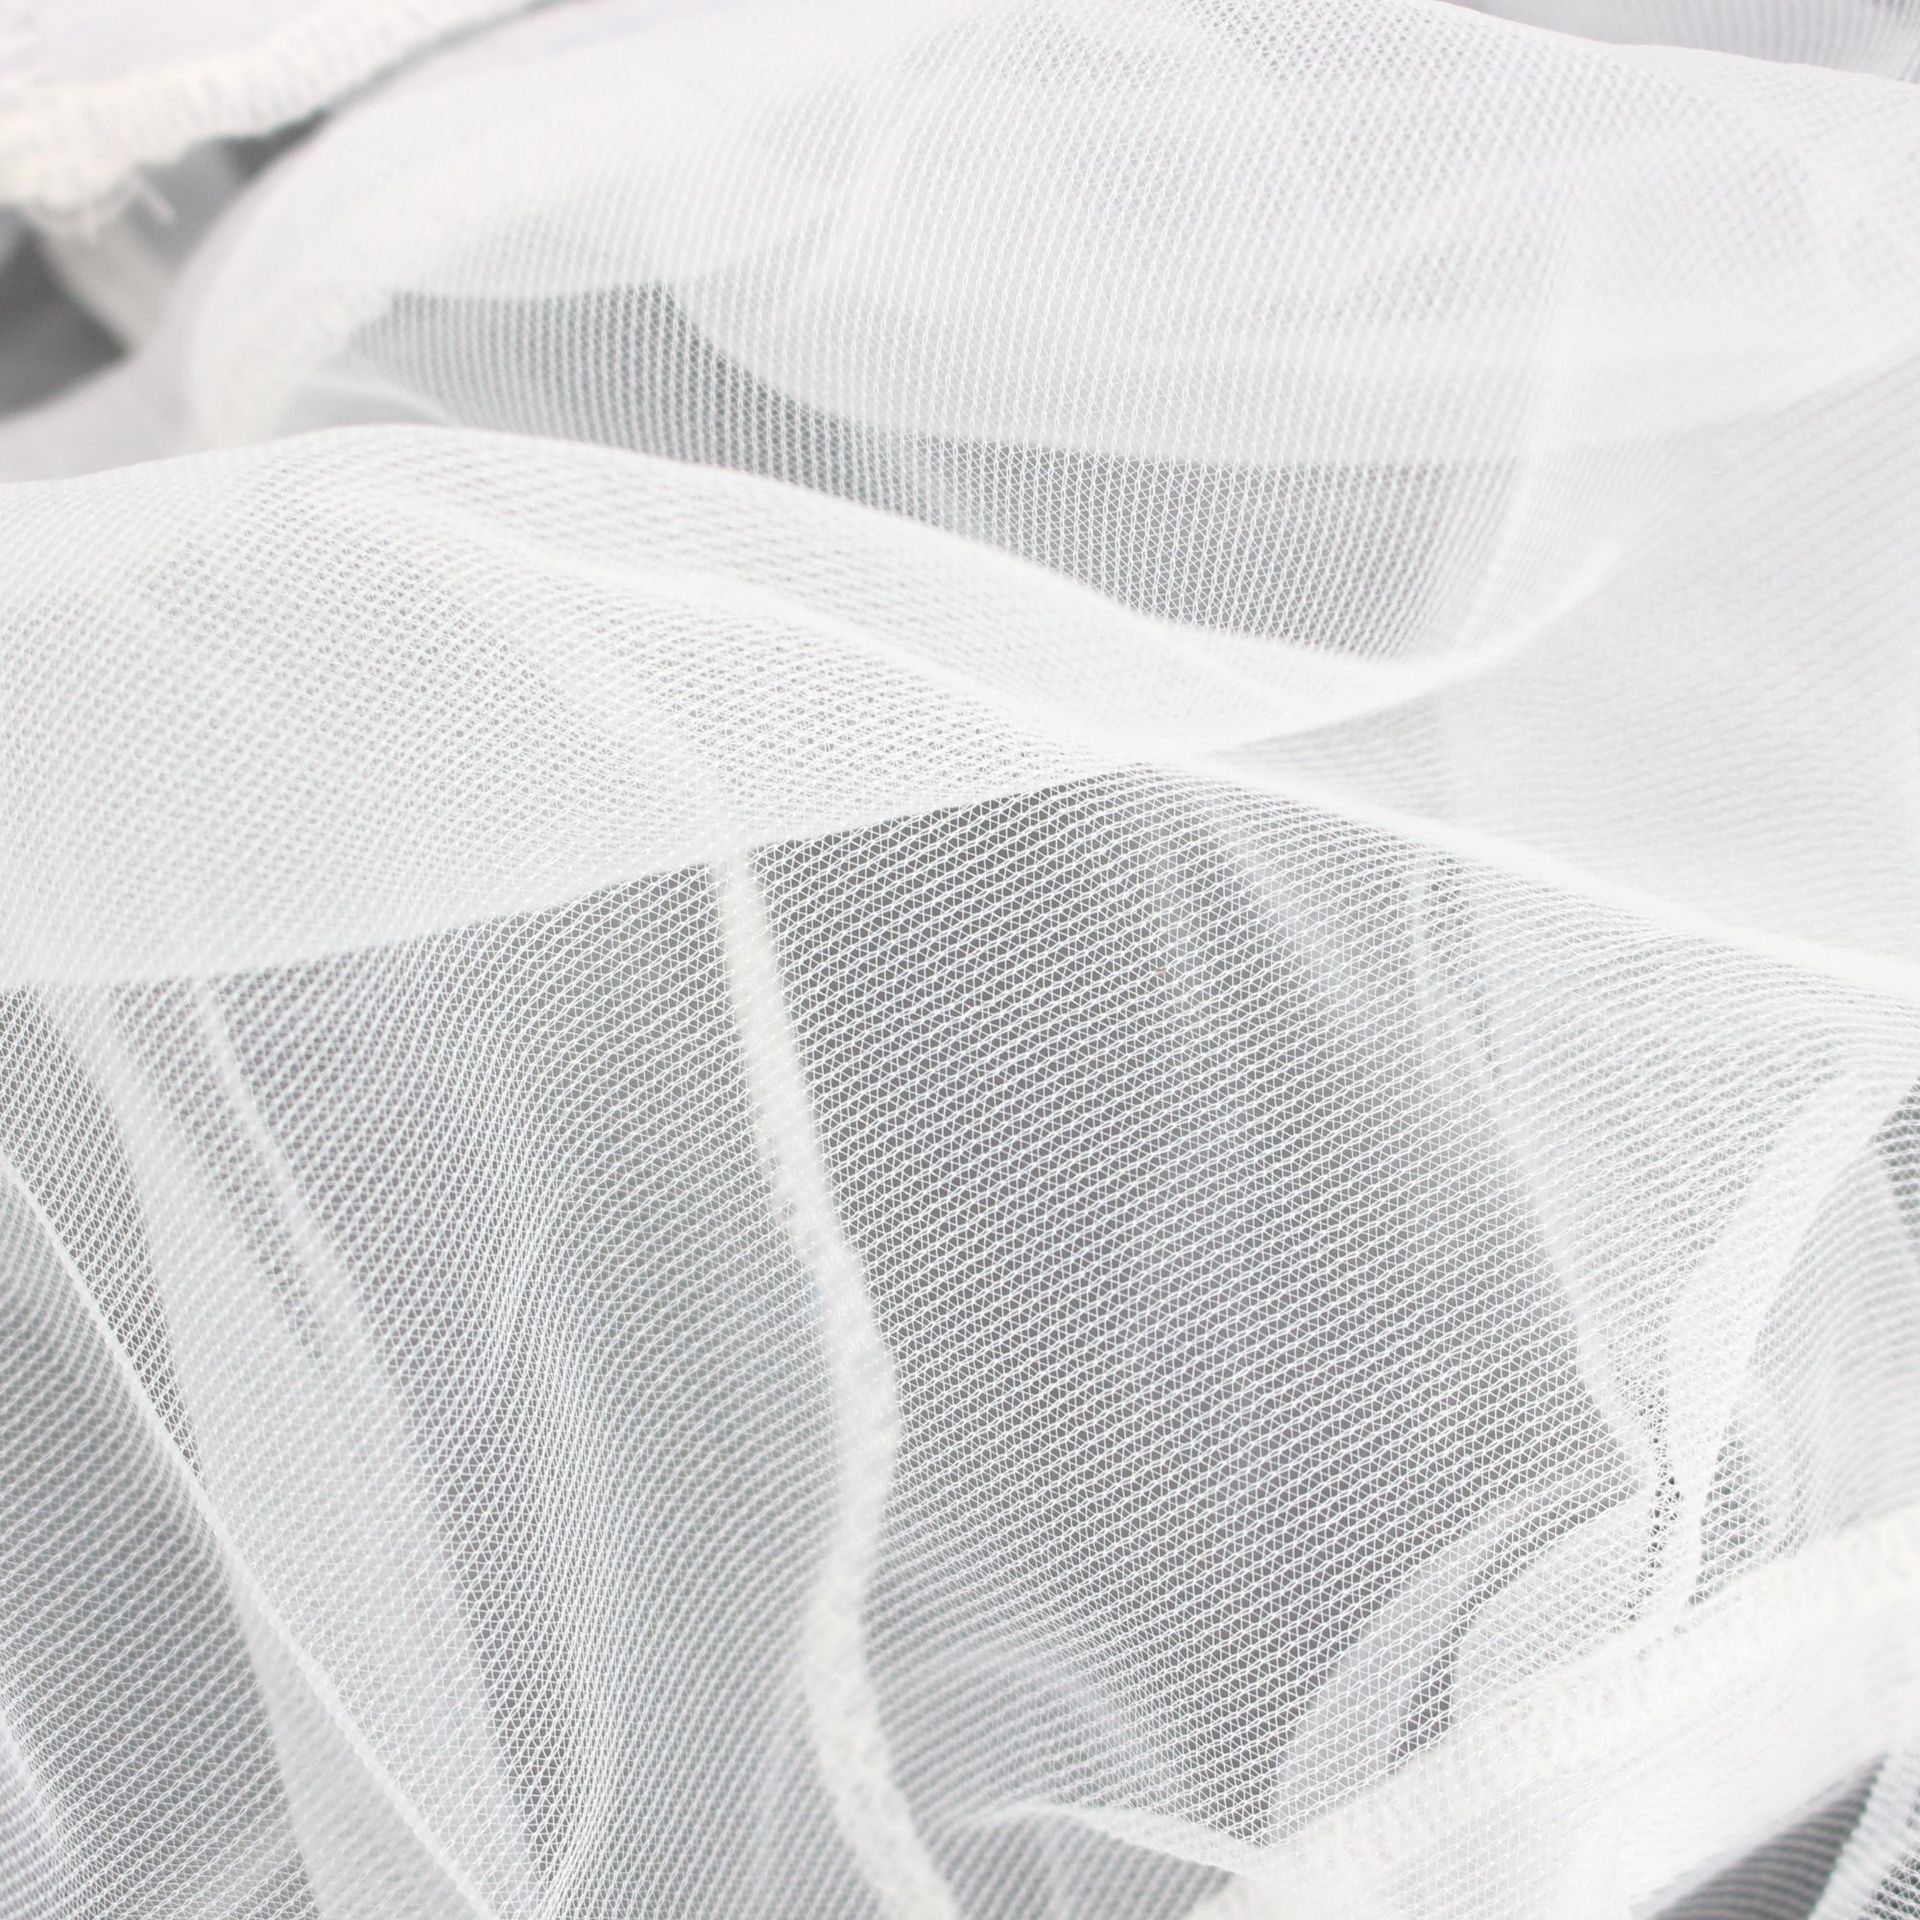 Ventilated Nylon Bird Cage Cover Shell Seed Catcher Pet Products,Nylon Mesh Net Cover Stretchy Shell Skirt Traps Cage Basket Soft Airy Bird Cage Cover Shell